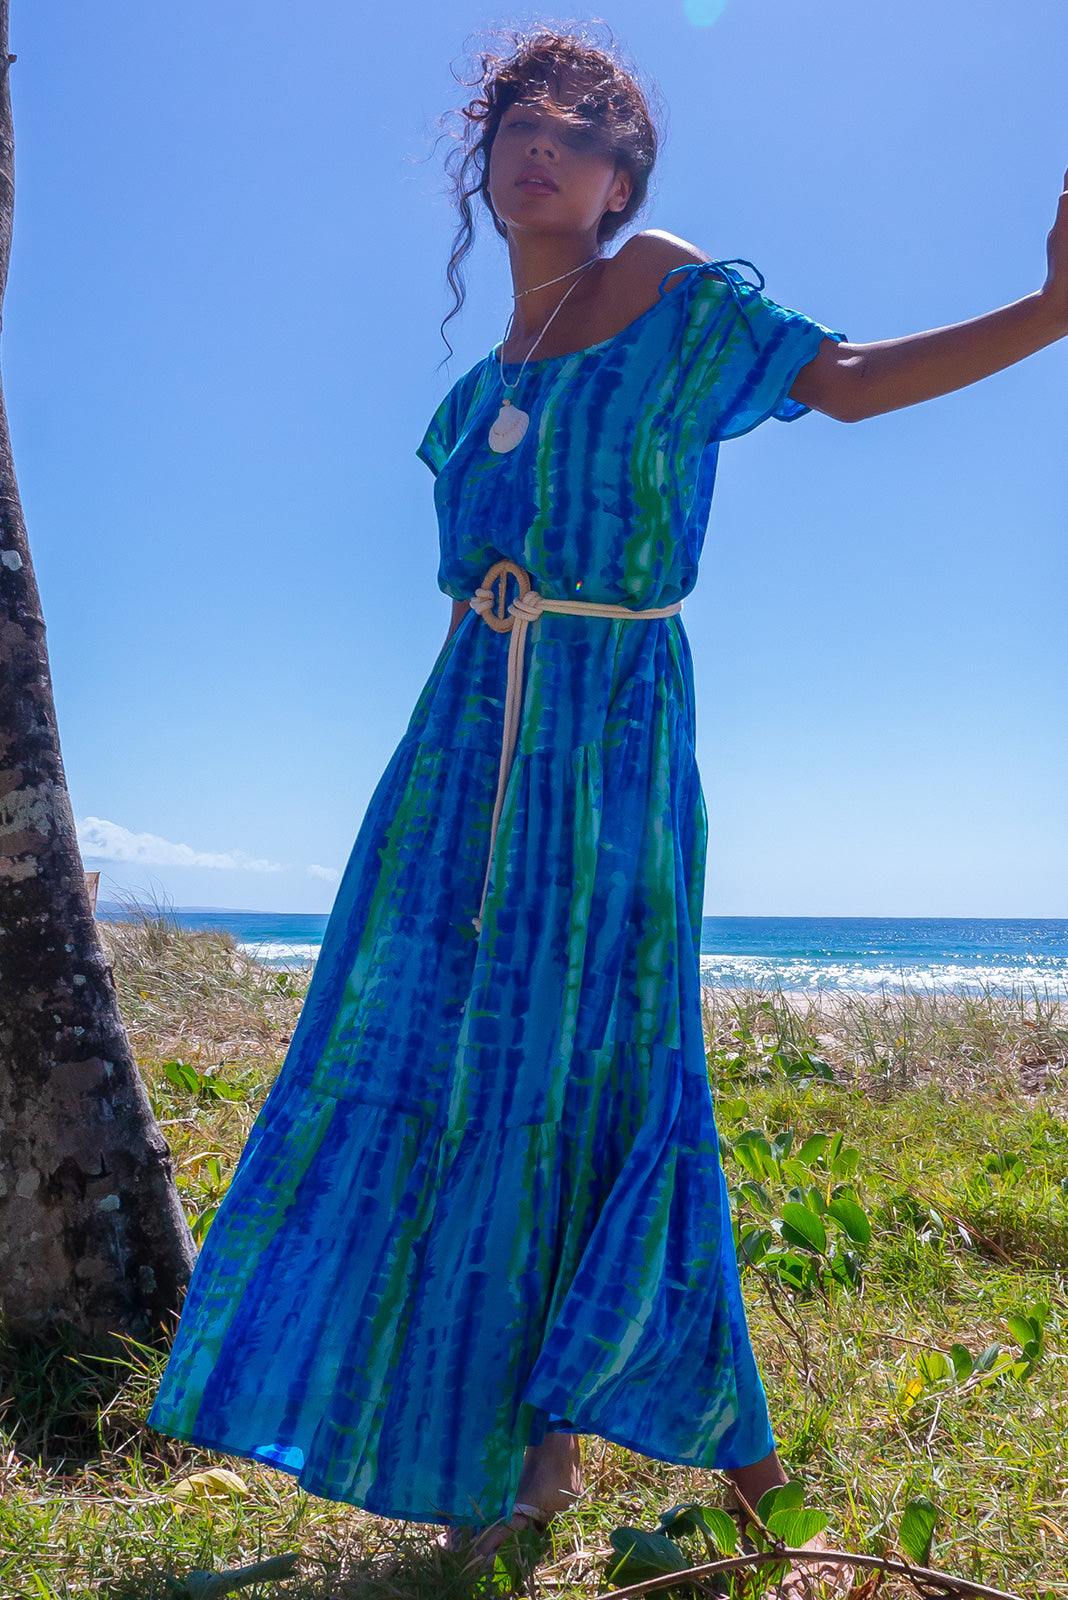 The Marina Bolo Blue Maxi Dress can be worn off shoulder and features adjustable side neck tie, drop waist with tiered skirt, side pockets, rope belt included and 100% rayon in blue and green tie dye print, print placement may vary.